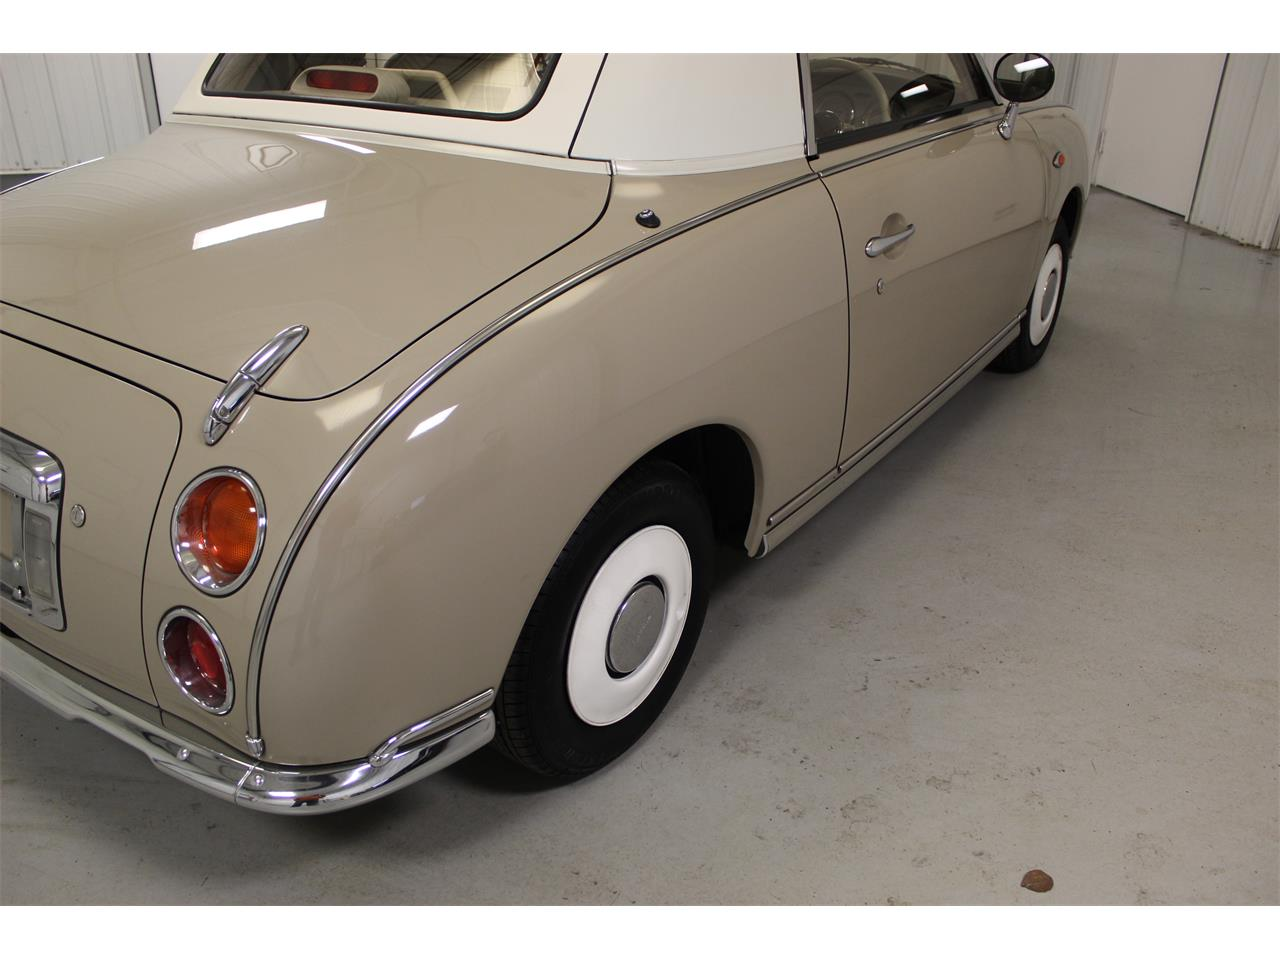 1991 Nissan Figaro for sale in Christiansburg, VA – photo 37